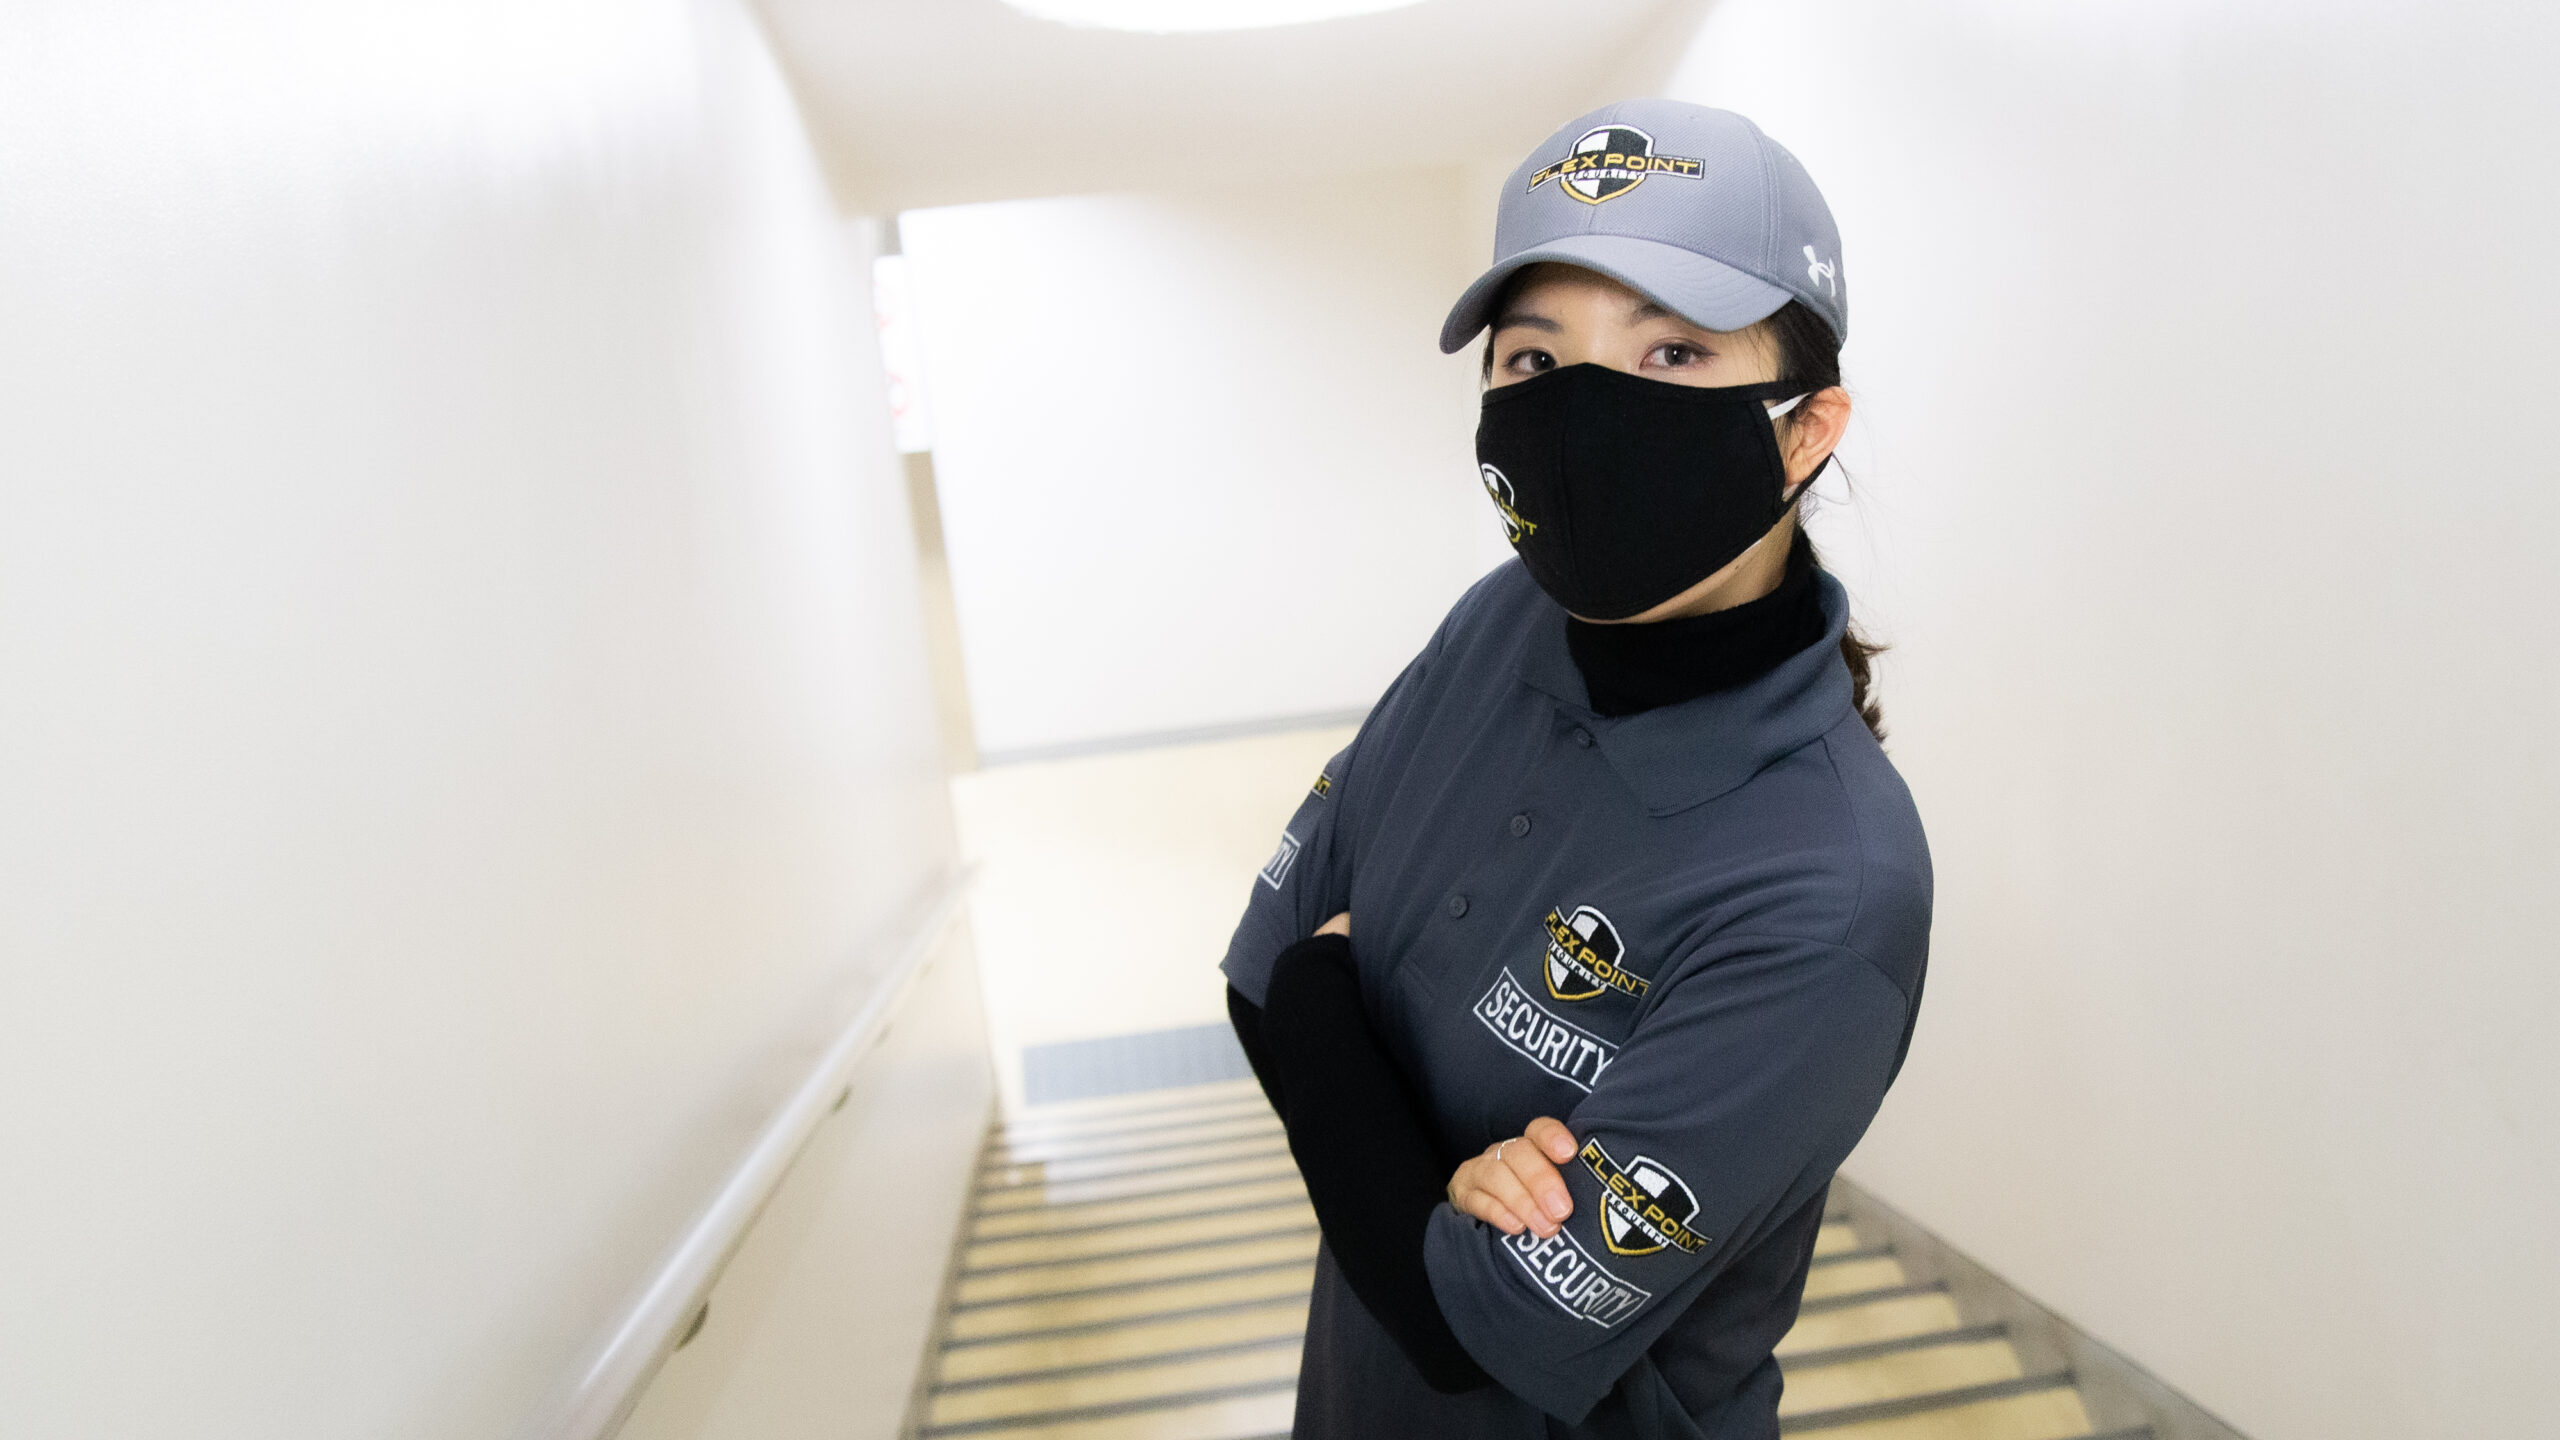 Female Flex Point Security guard standing in a stairwell as she provides office building security